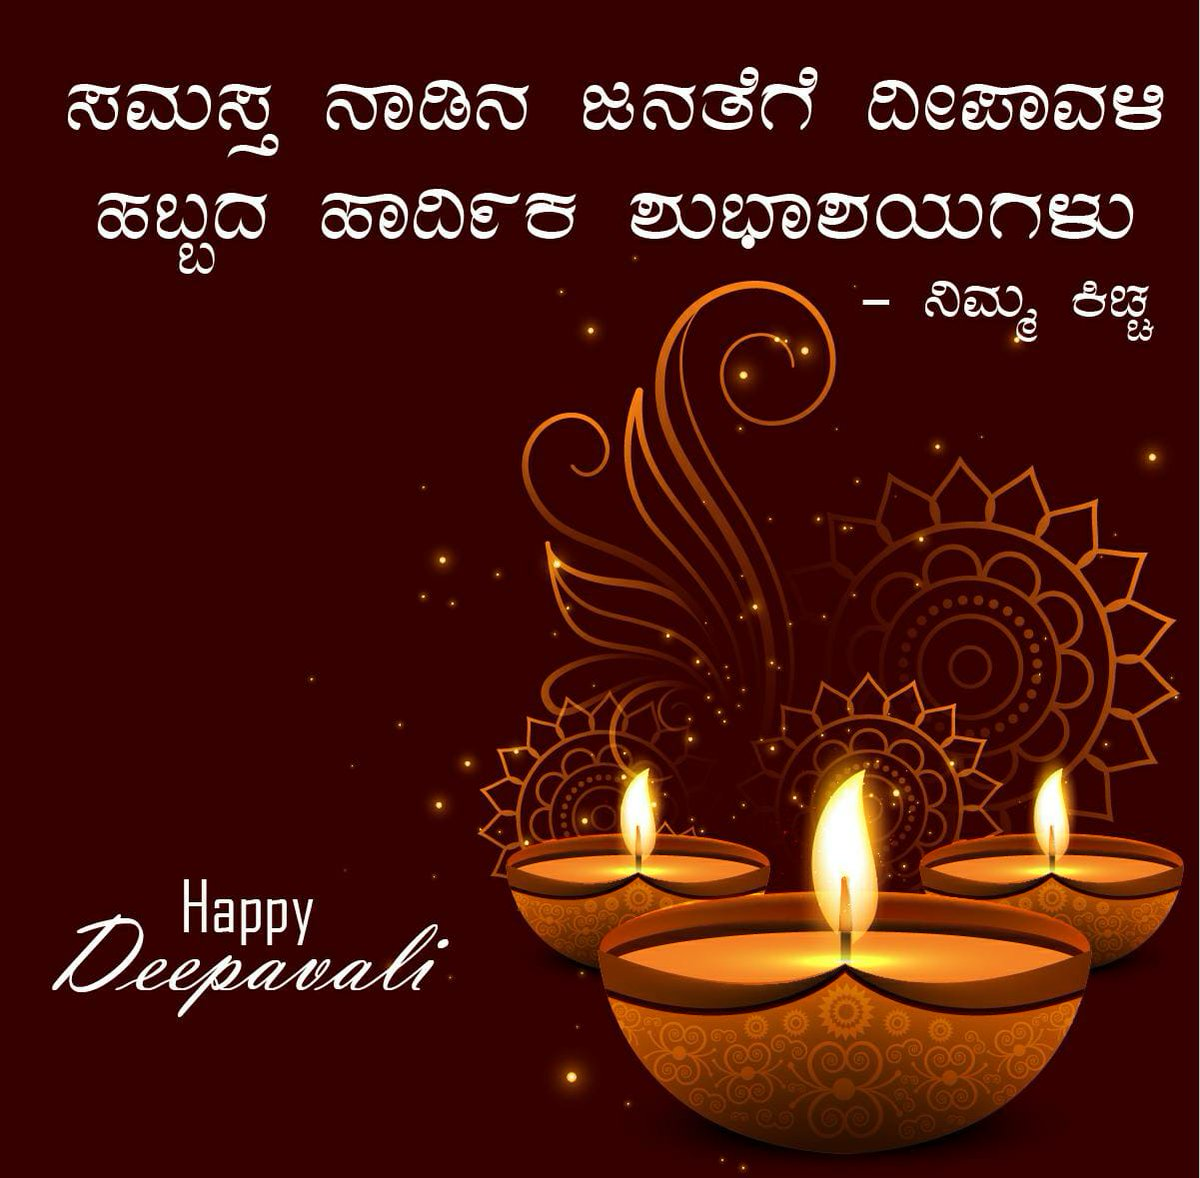 Wshn all you friends a Very Happy Festival. Stay blessed ,,,stay happy. 🤗🤗